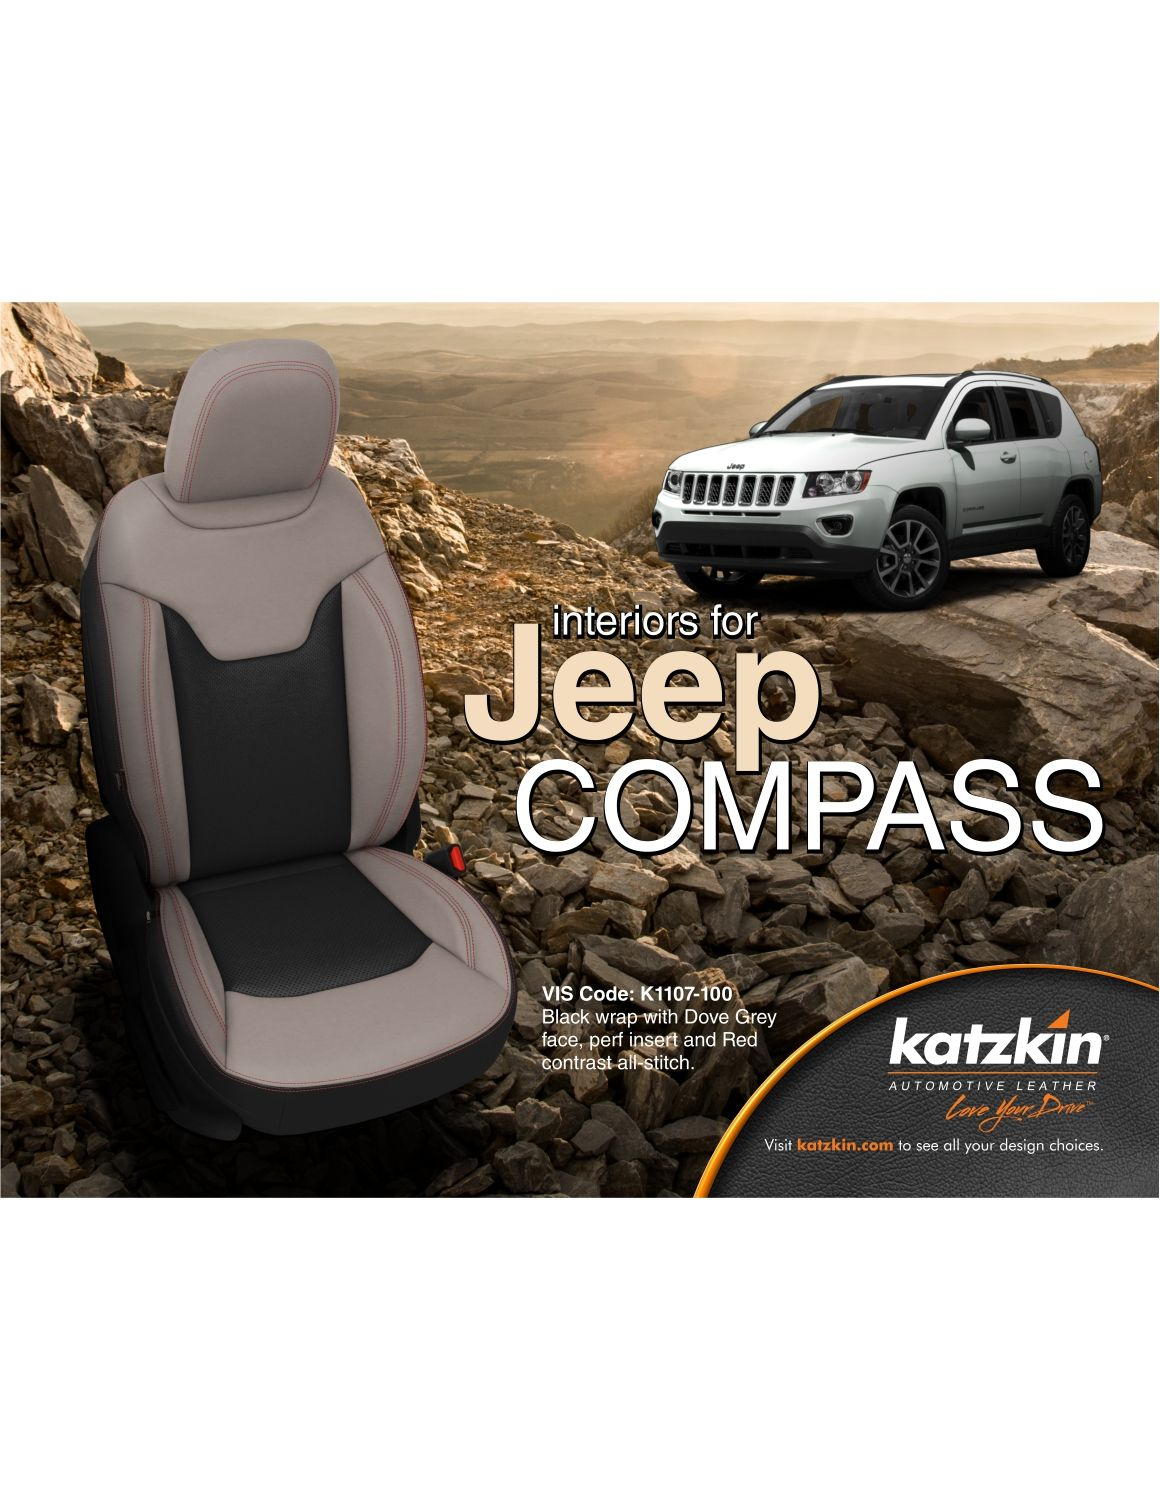 2017 Jeep Compass (NEW BODY STYLE) (eBrochure)